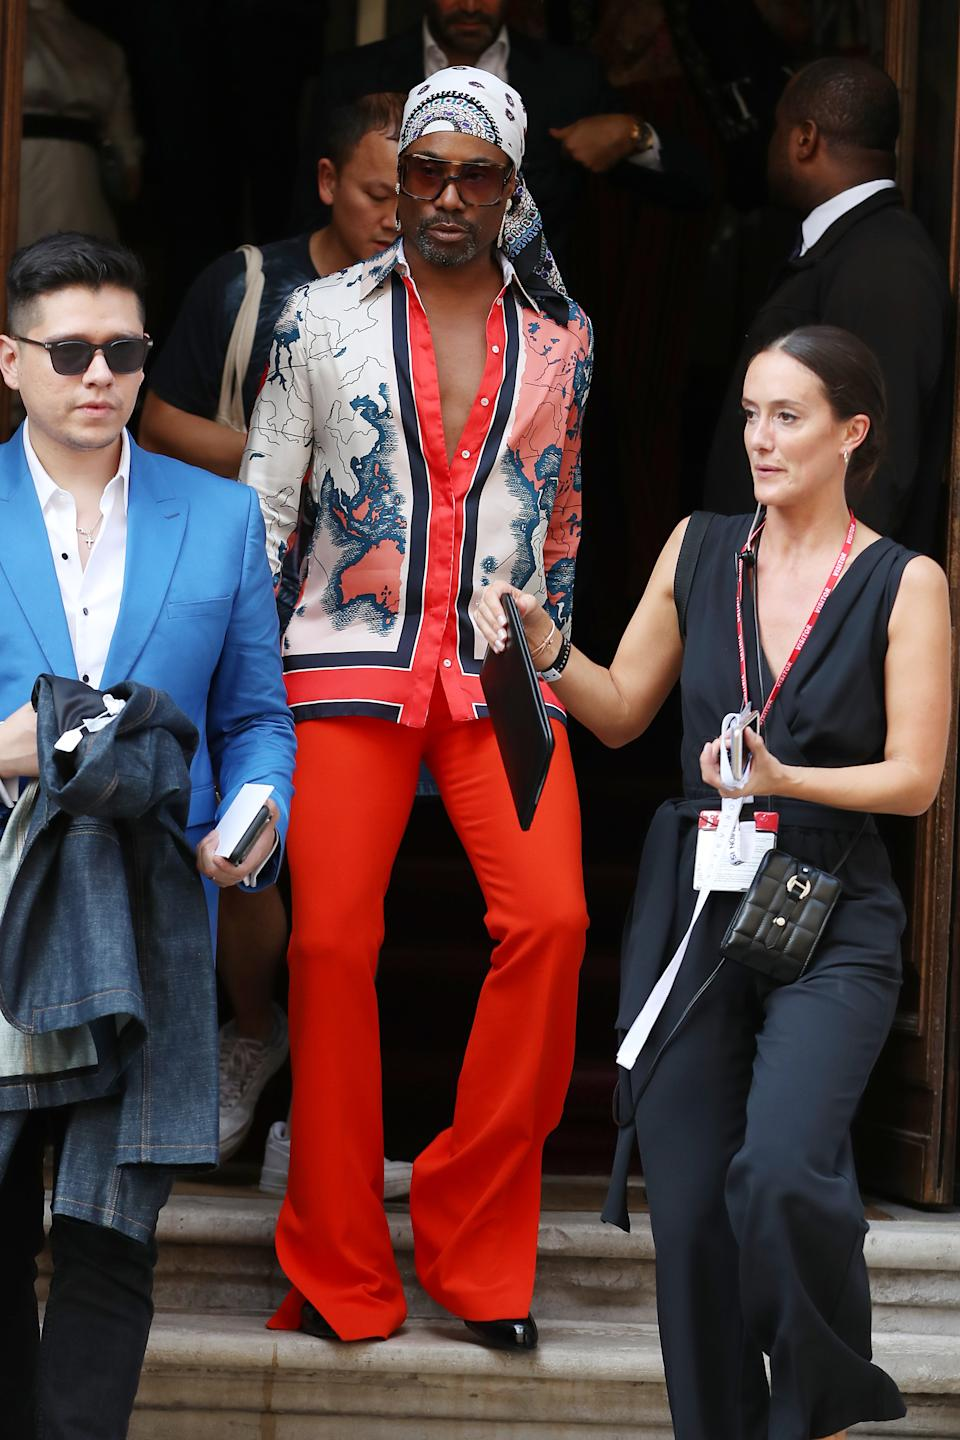 Billy Porter arrived wearing a pair of statement red trousers and a patterned shirt [Photo: Getty]